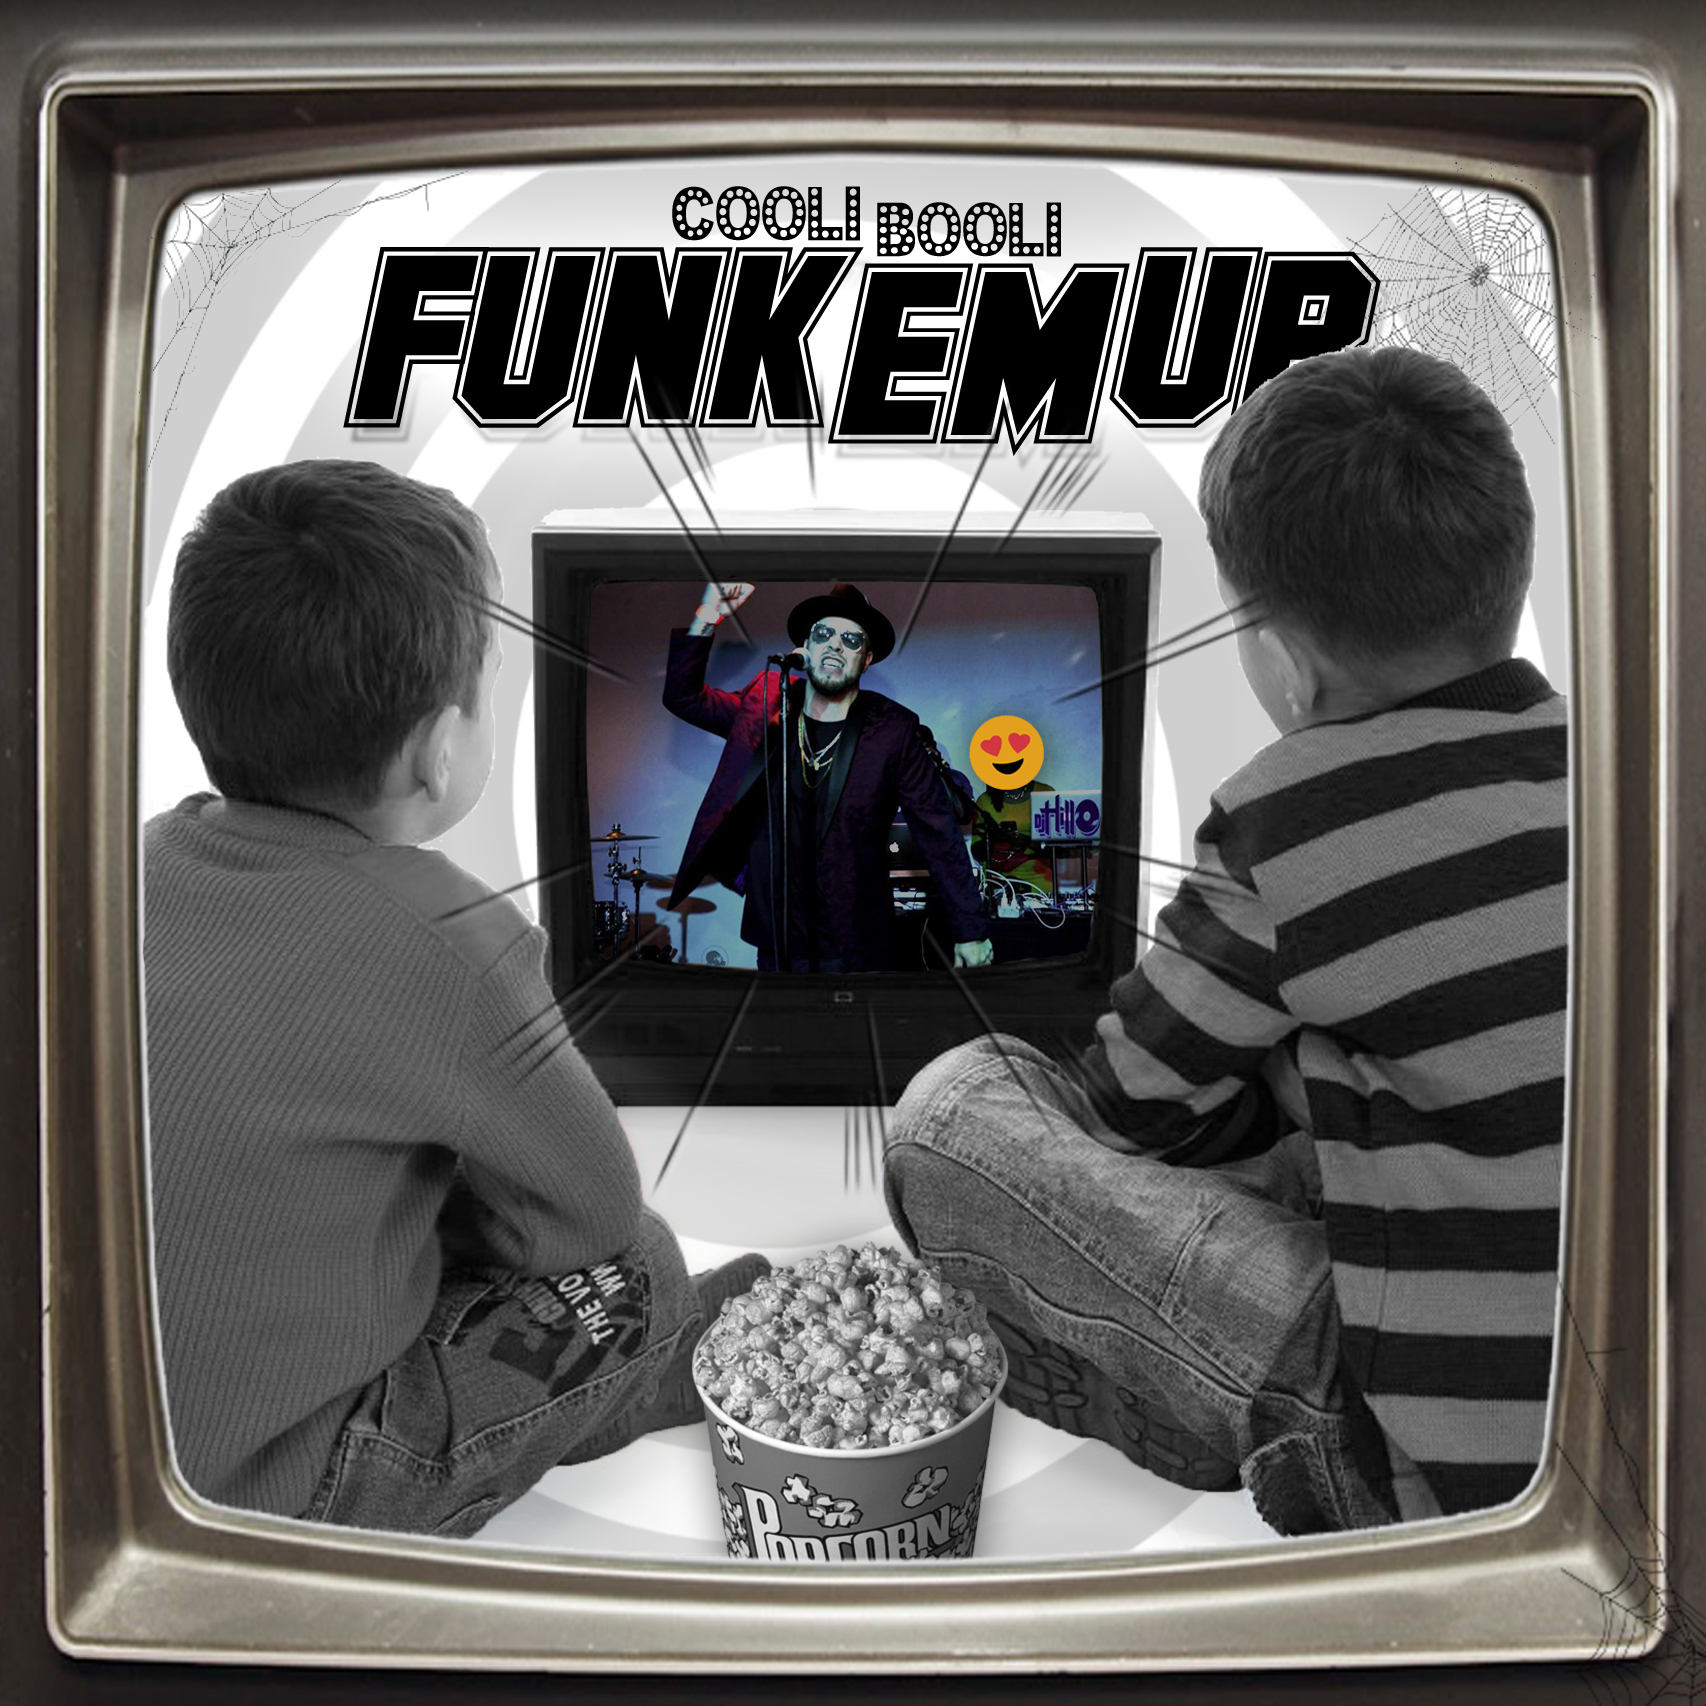 FUNK EM UP ARTWORK